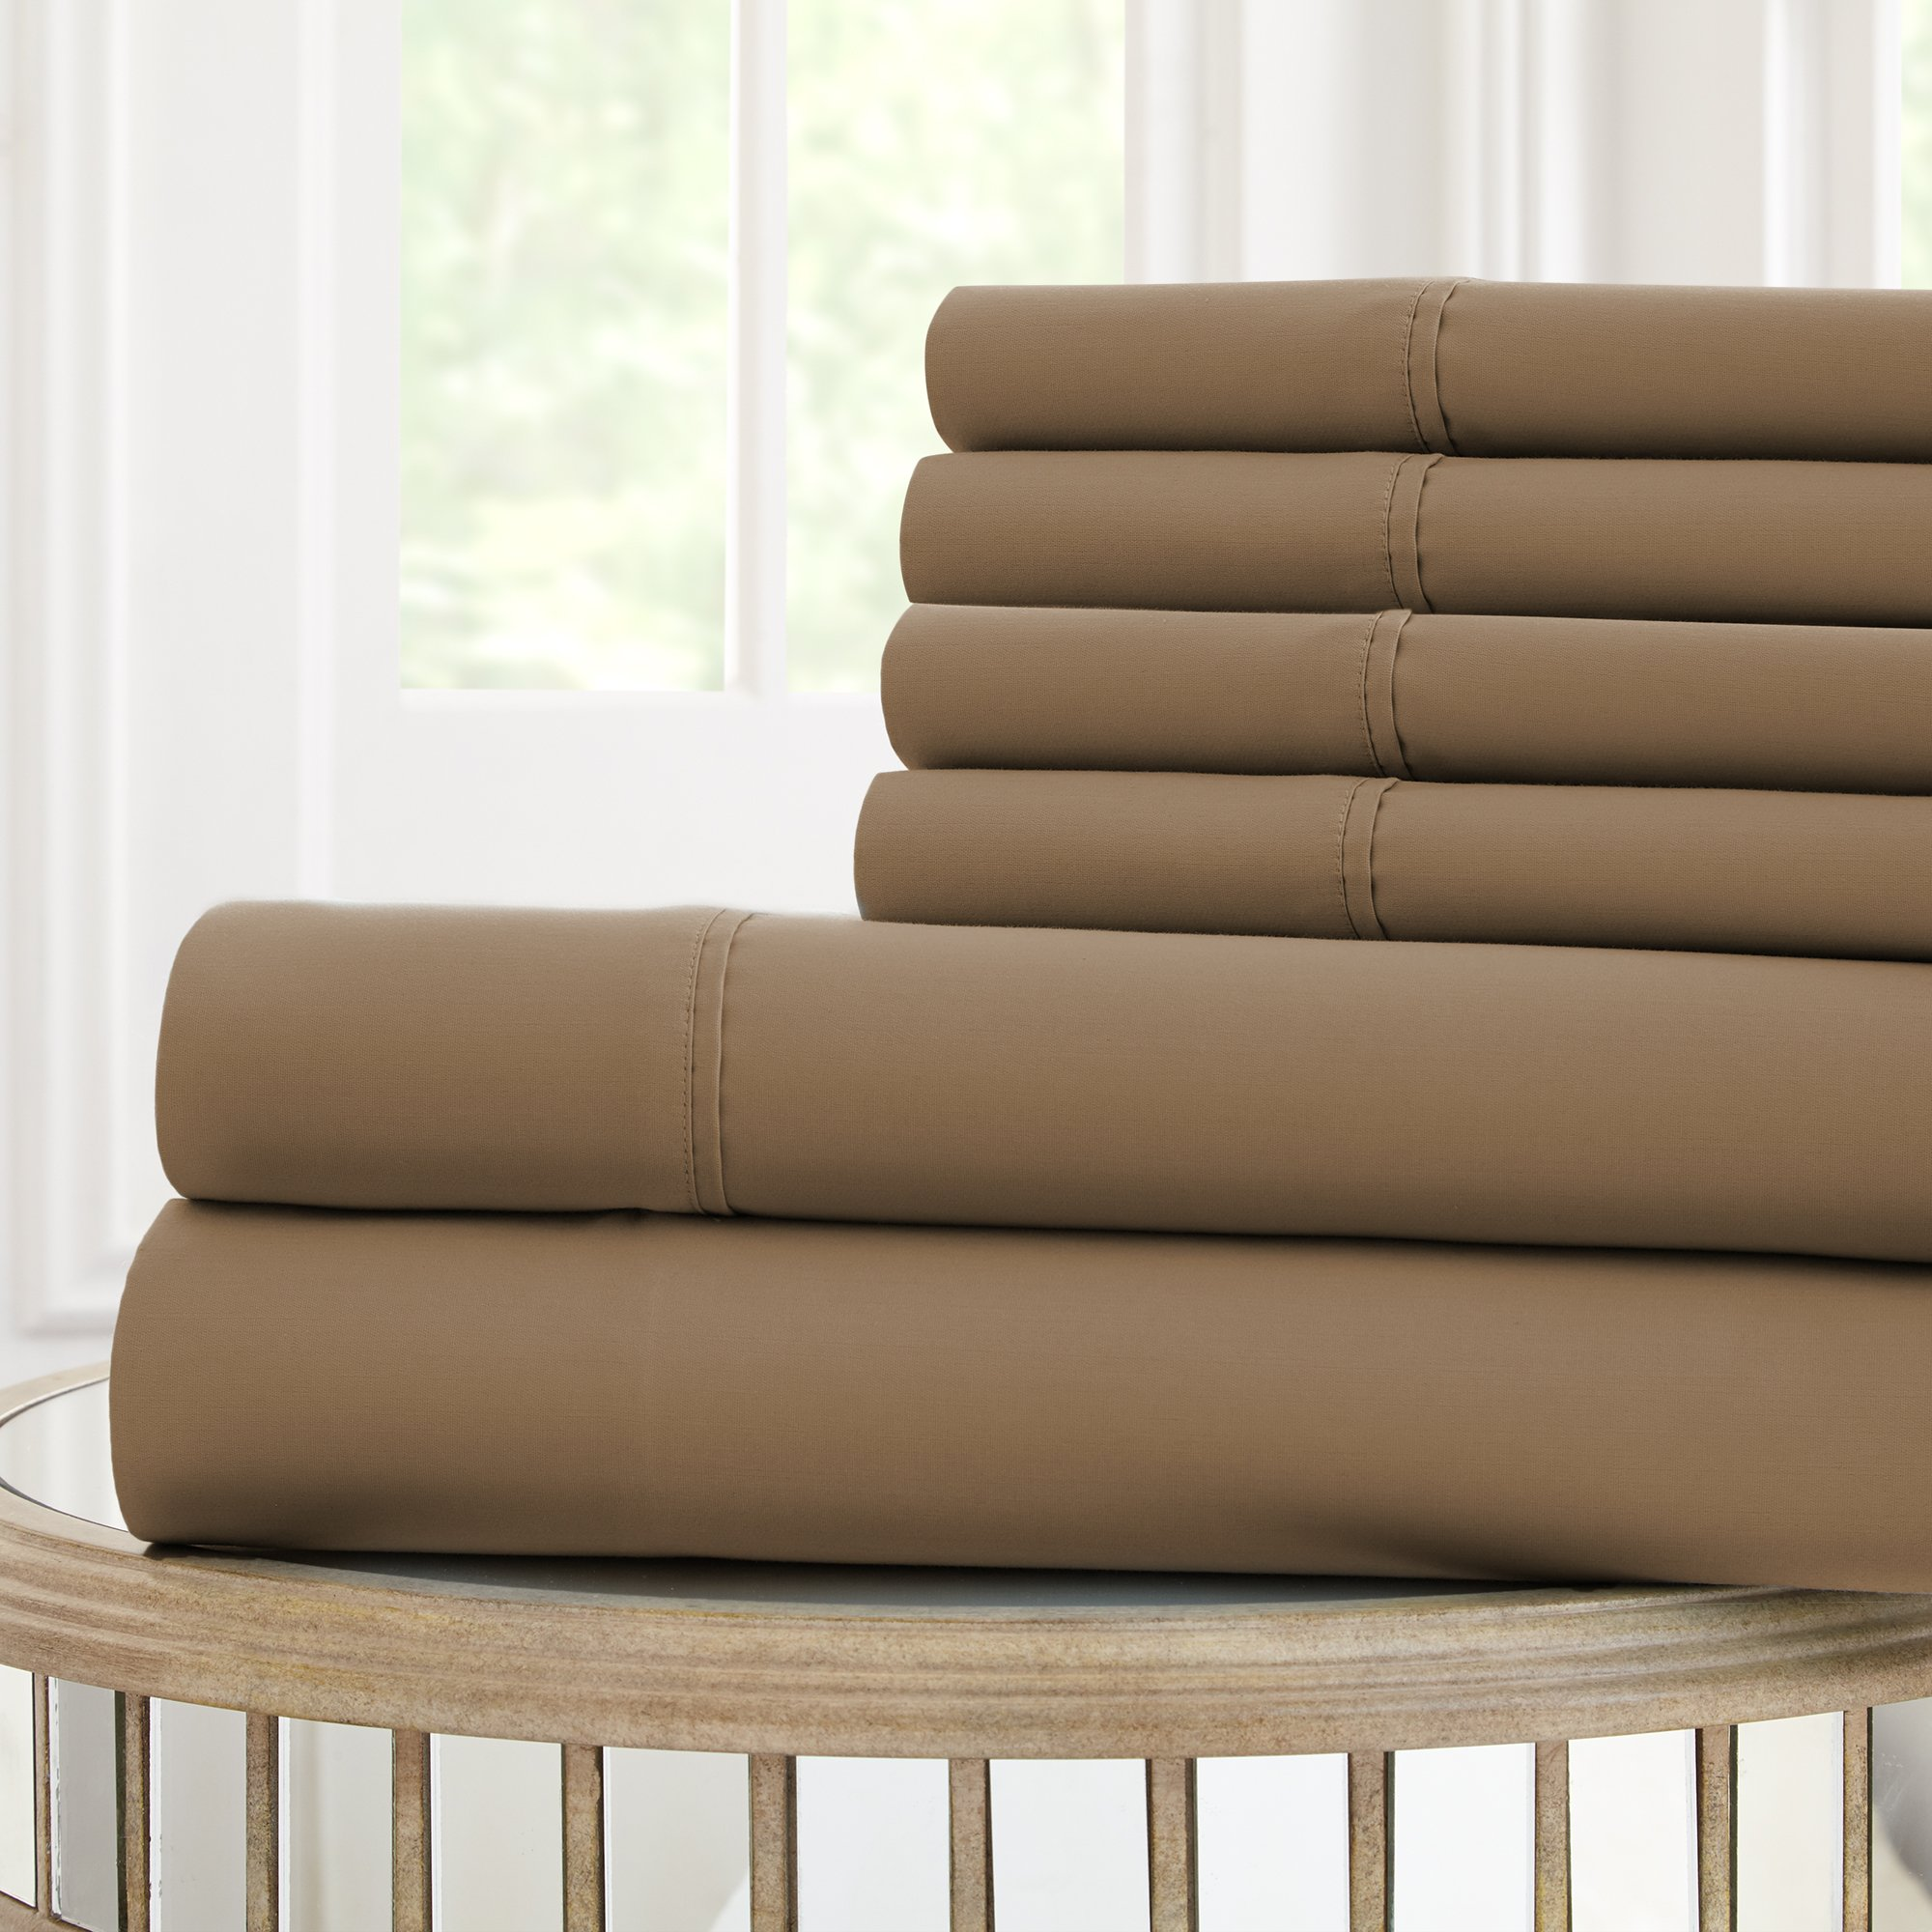 Amrapur Overseas 6-Piece Nanotex Cool Comfort 120 GSM Microfiber Sheet Set (Mocha, Queen)